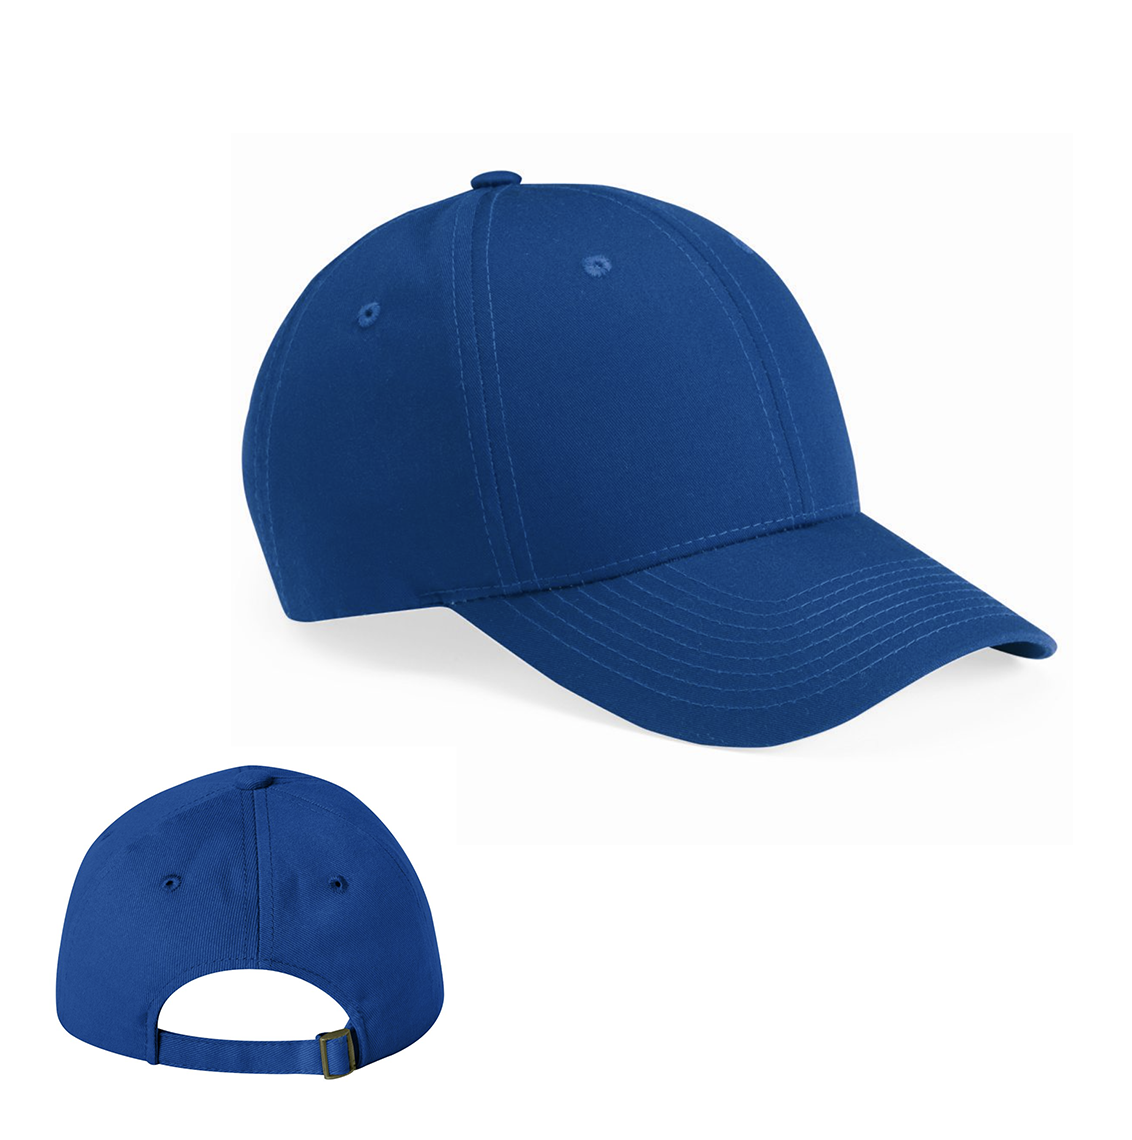 Heavy Brushed Twill Unstructured Cap - 9610